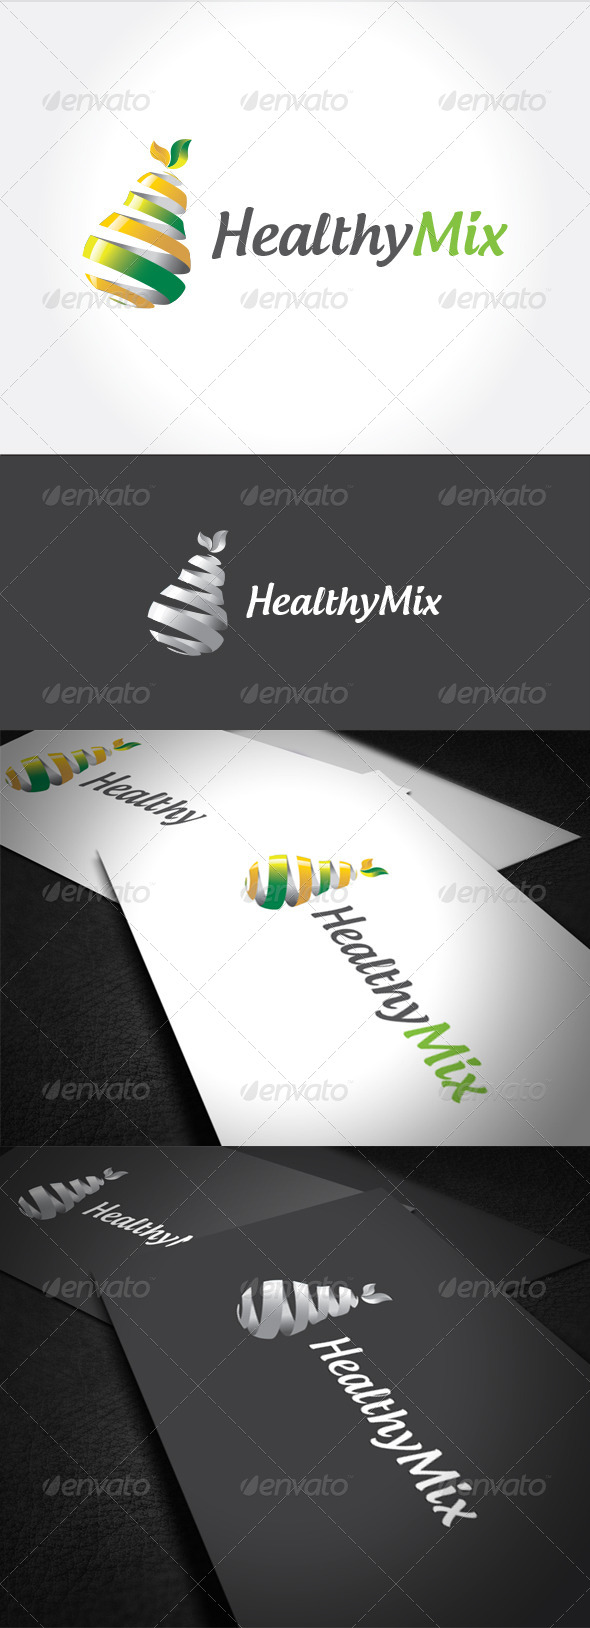 GraphicRiver Healty Mix Logo Template 6735532